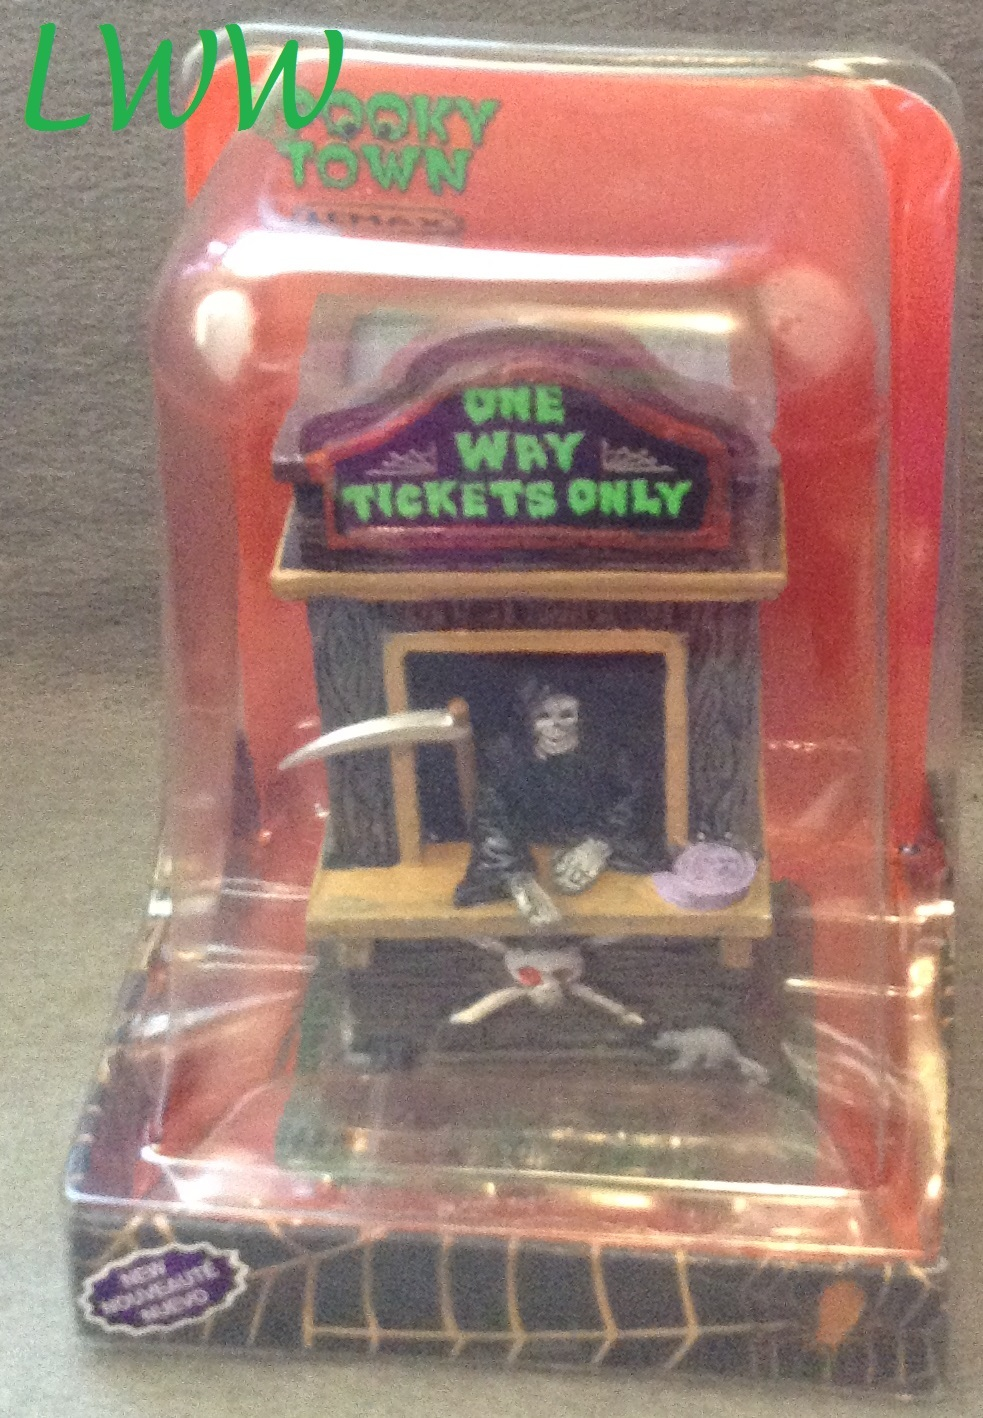 Lemax Spooky Town Ticket Booth Kiosk Grim Reaper Table Accent in Package